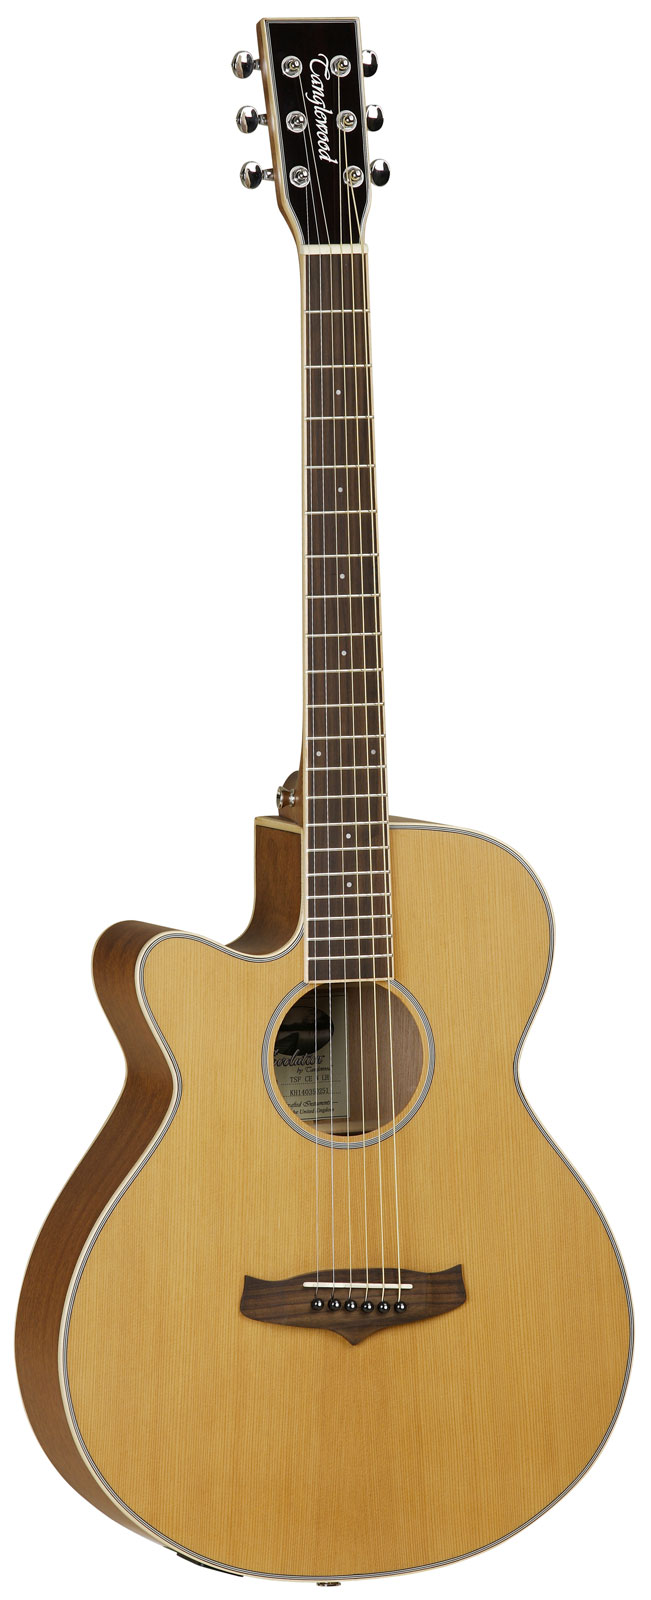 TANGLEWOOD GAUCHER EVOLUTION IV TSFCENLH NATURAL SATIN